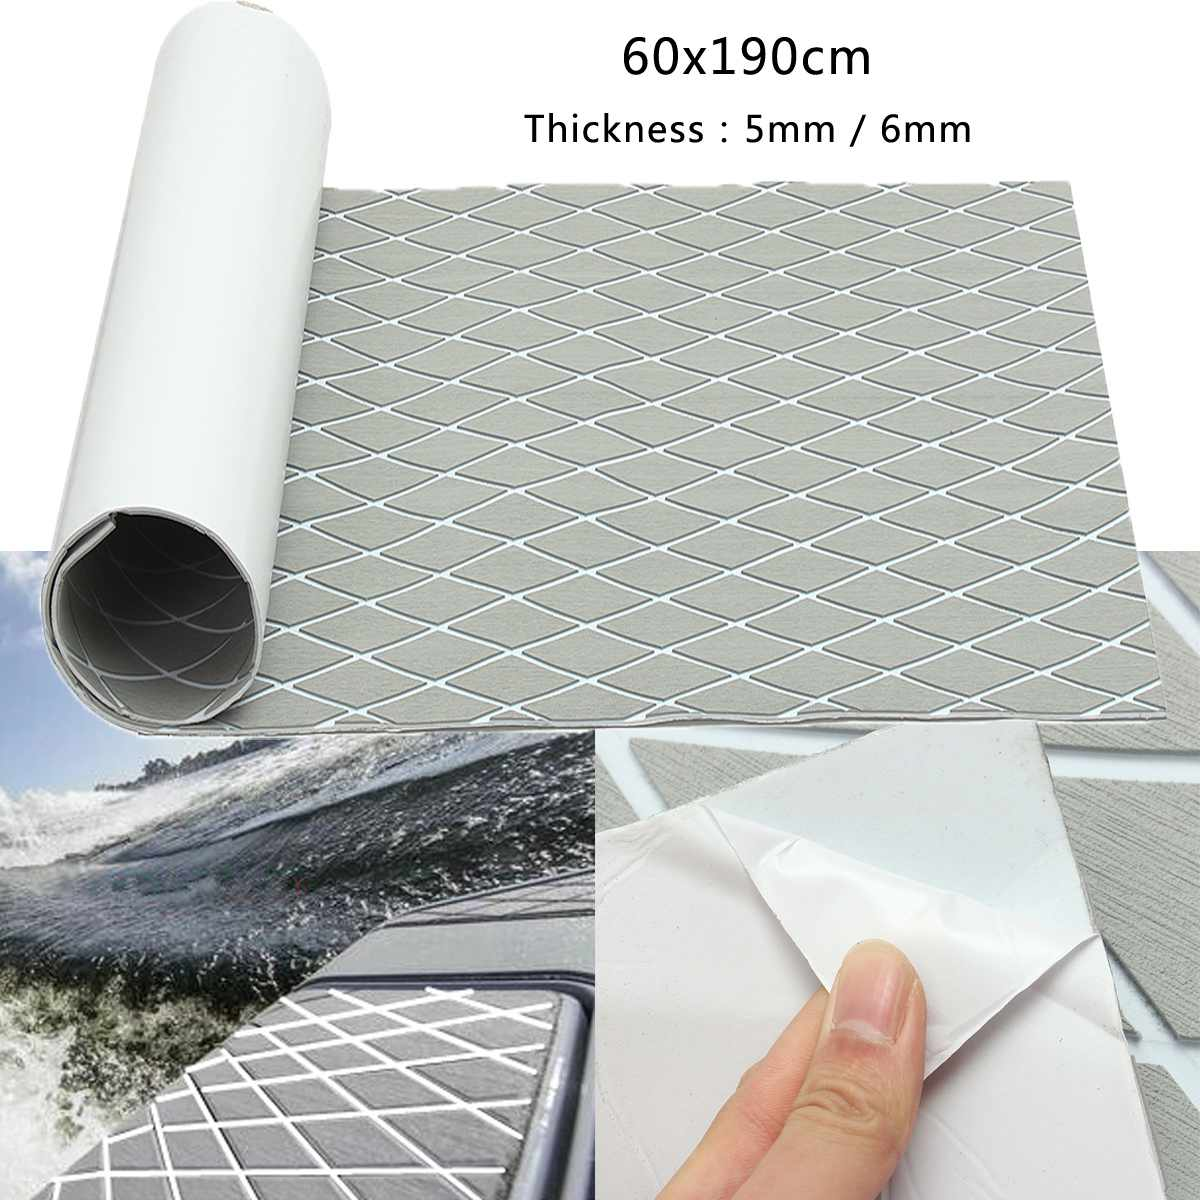 Audew 60x190cm 5/6mm Rhombus EVA Foam Gray With White Lines Boat Flooring Faux Teak Sheet Self-Adhesive Marine Boat Decking Mats